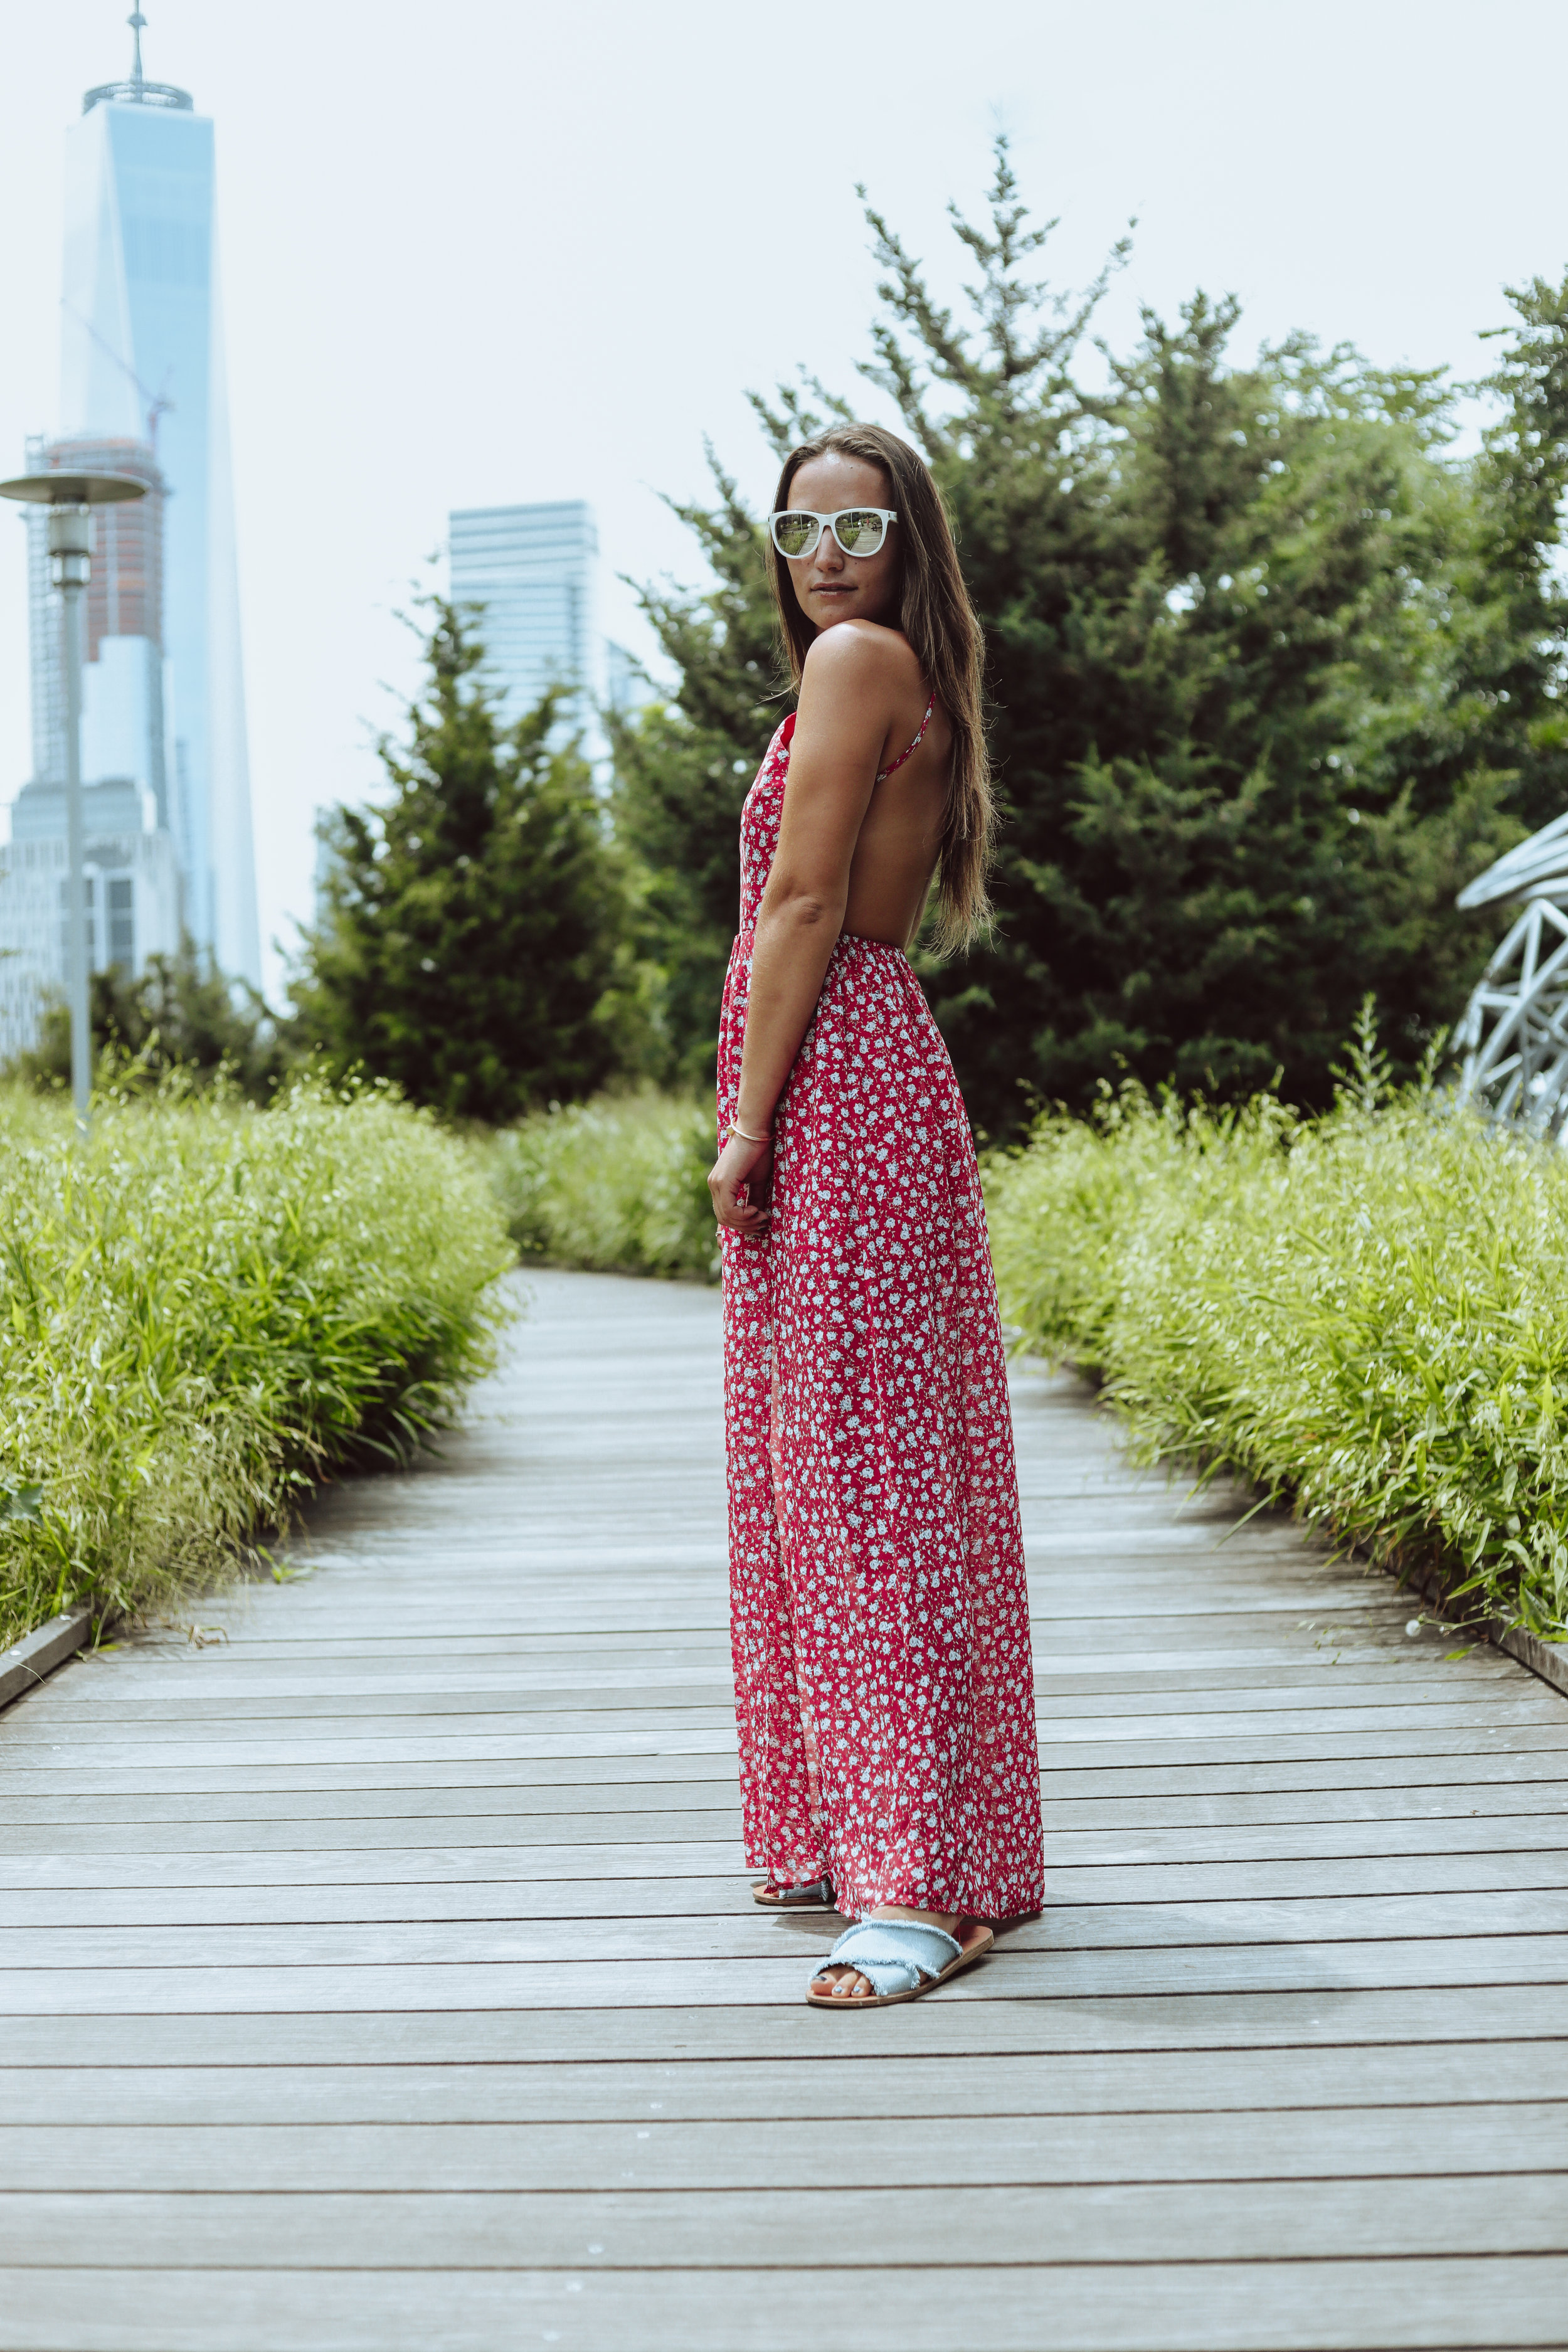 SOPHIE BICKLEY YIN 2MY YANG NYC SISTER FASHION BLOGGERS TOBI FLORAL POST